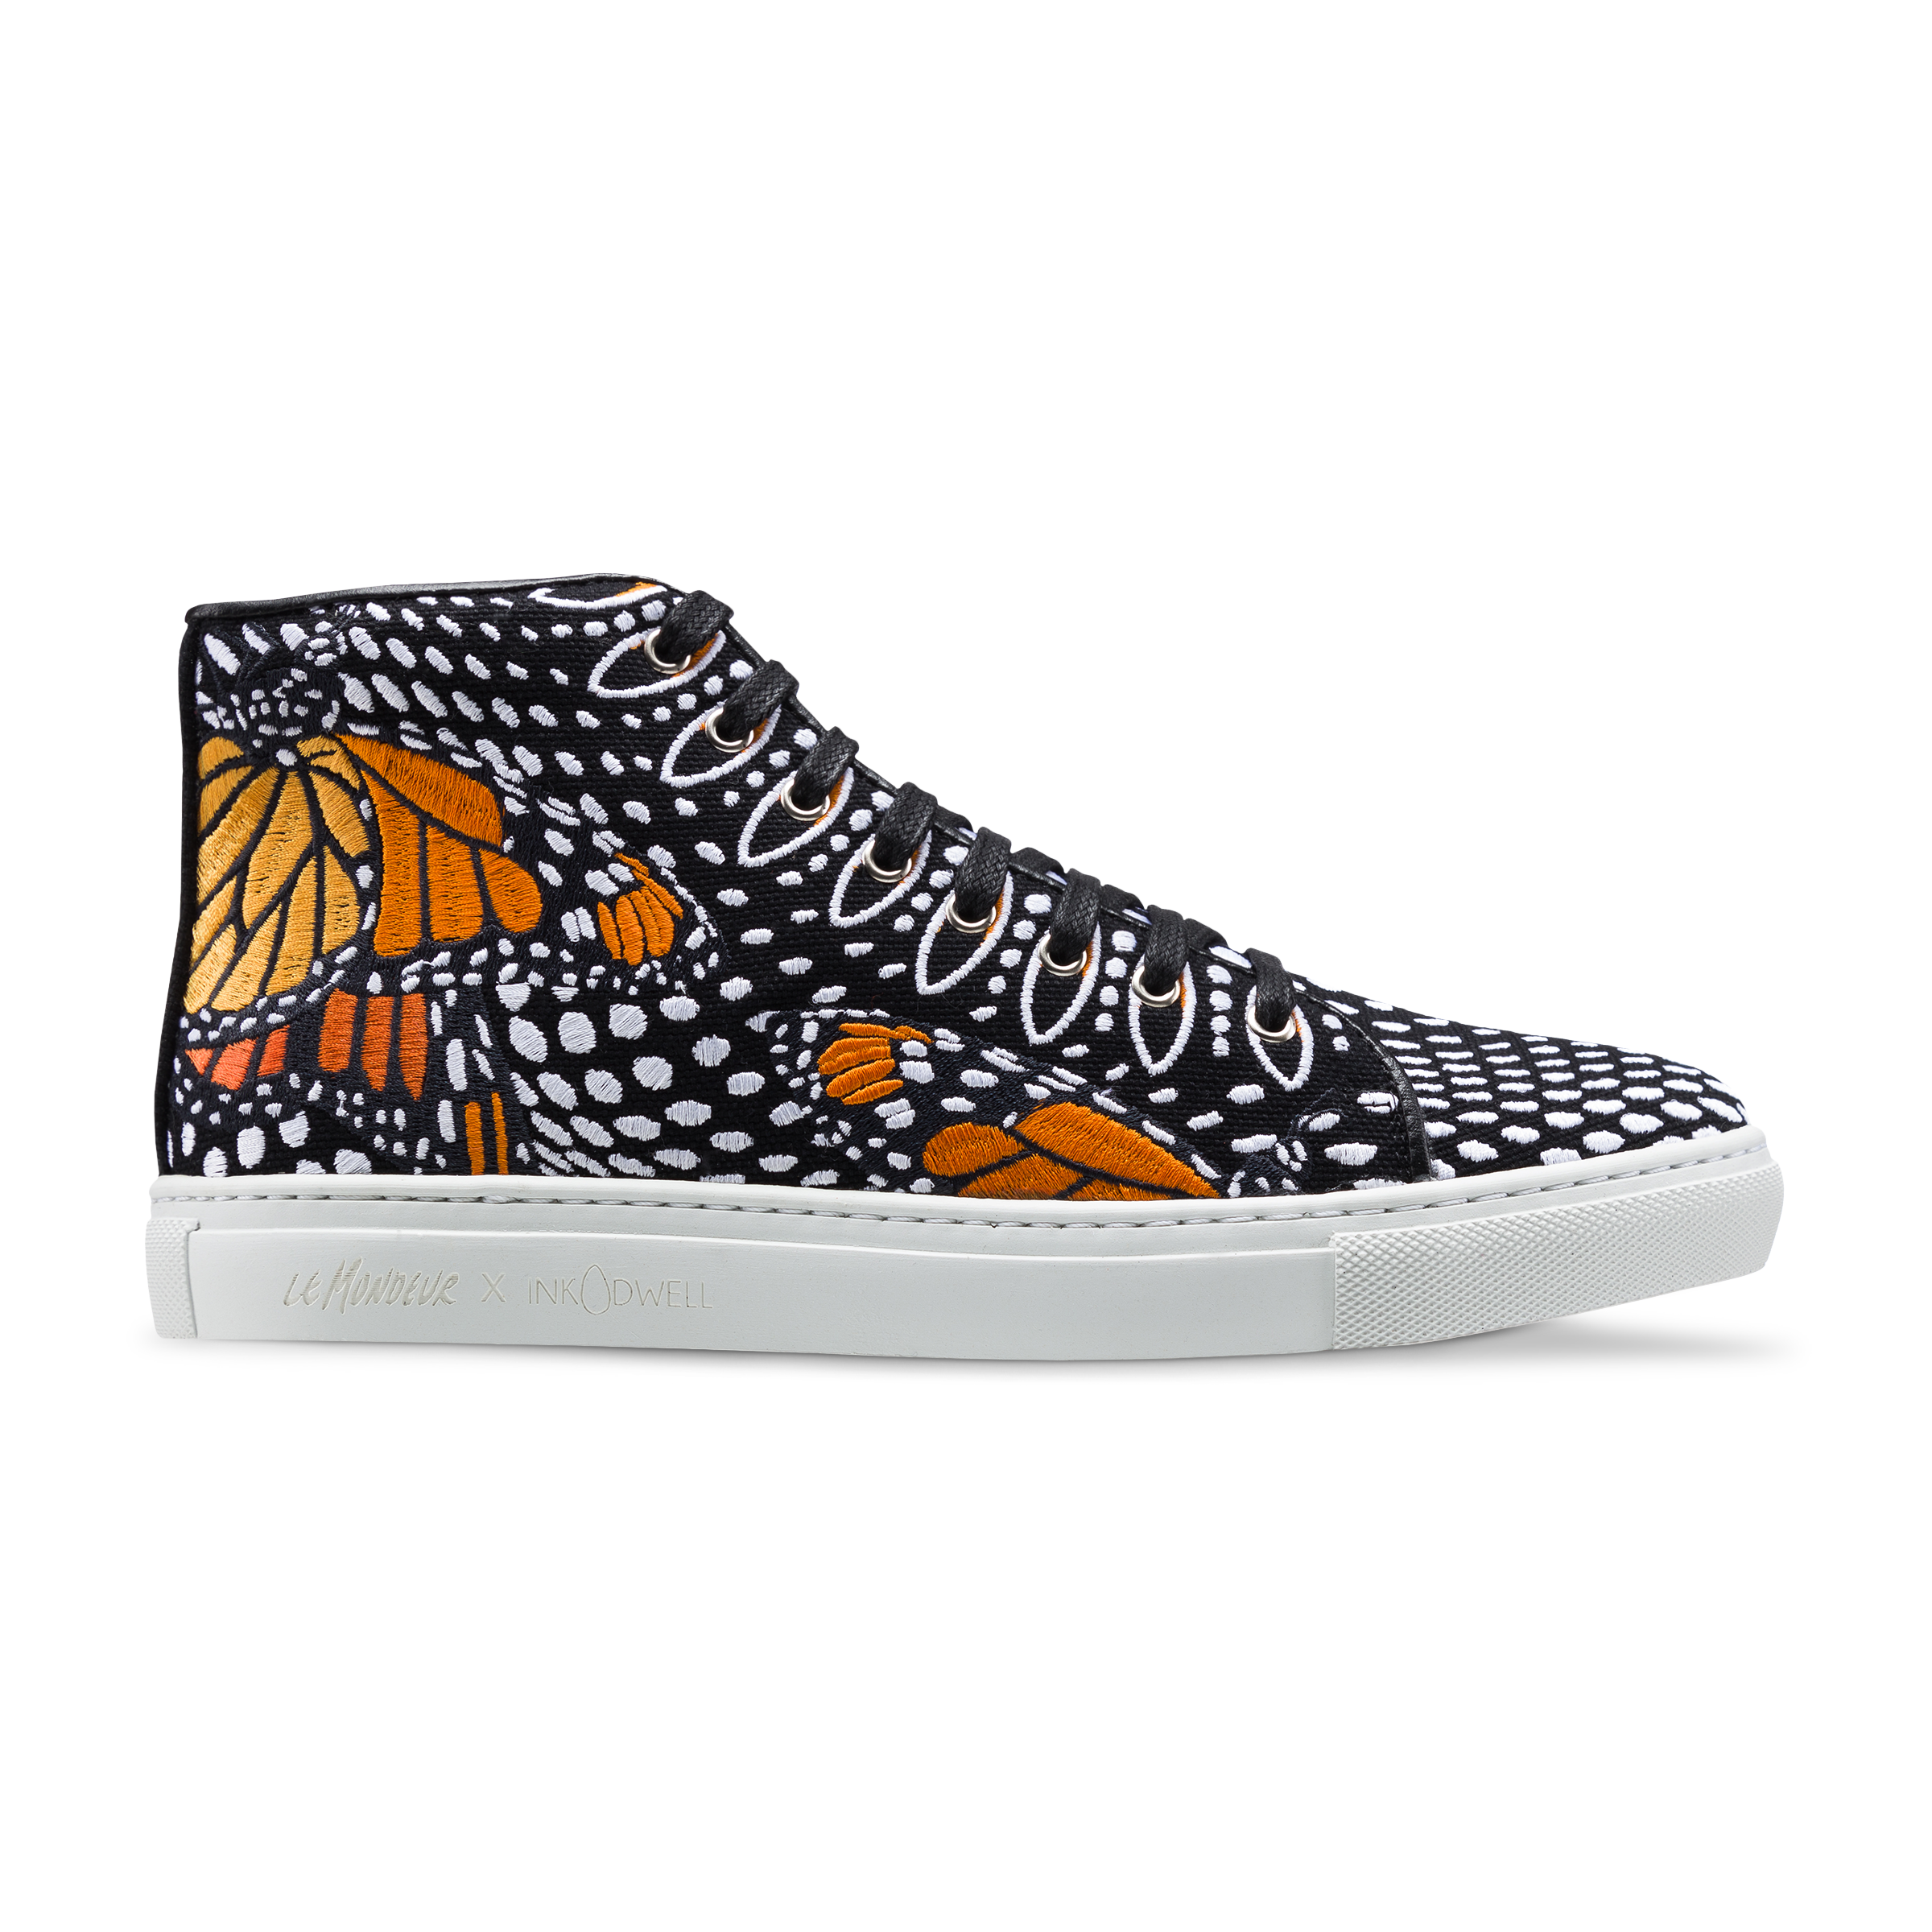 Monarch in Moda - High Top by Le Mondeur x Ink Dwell